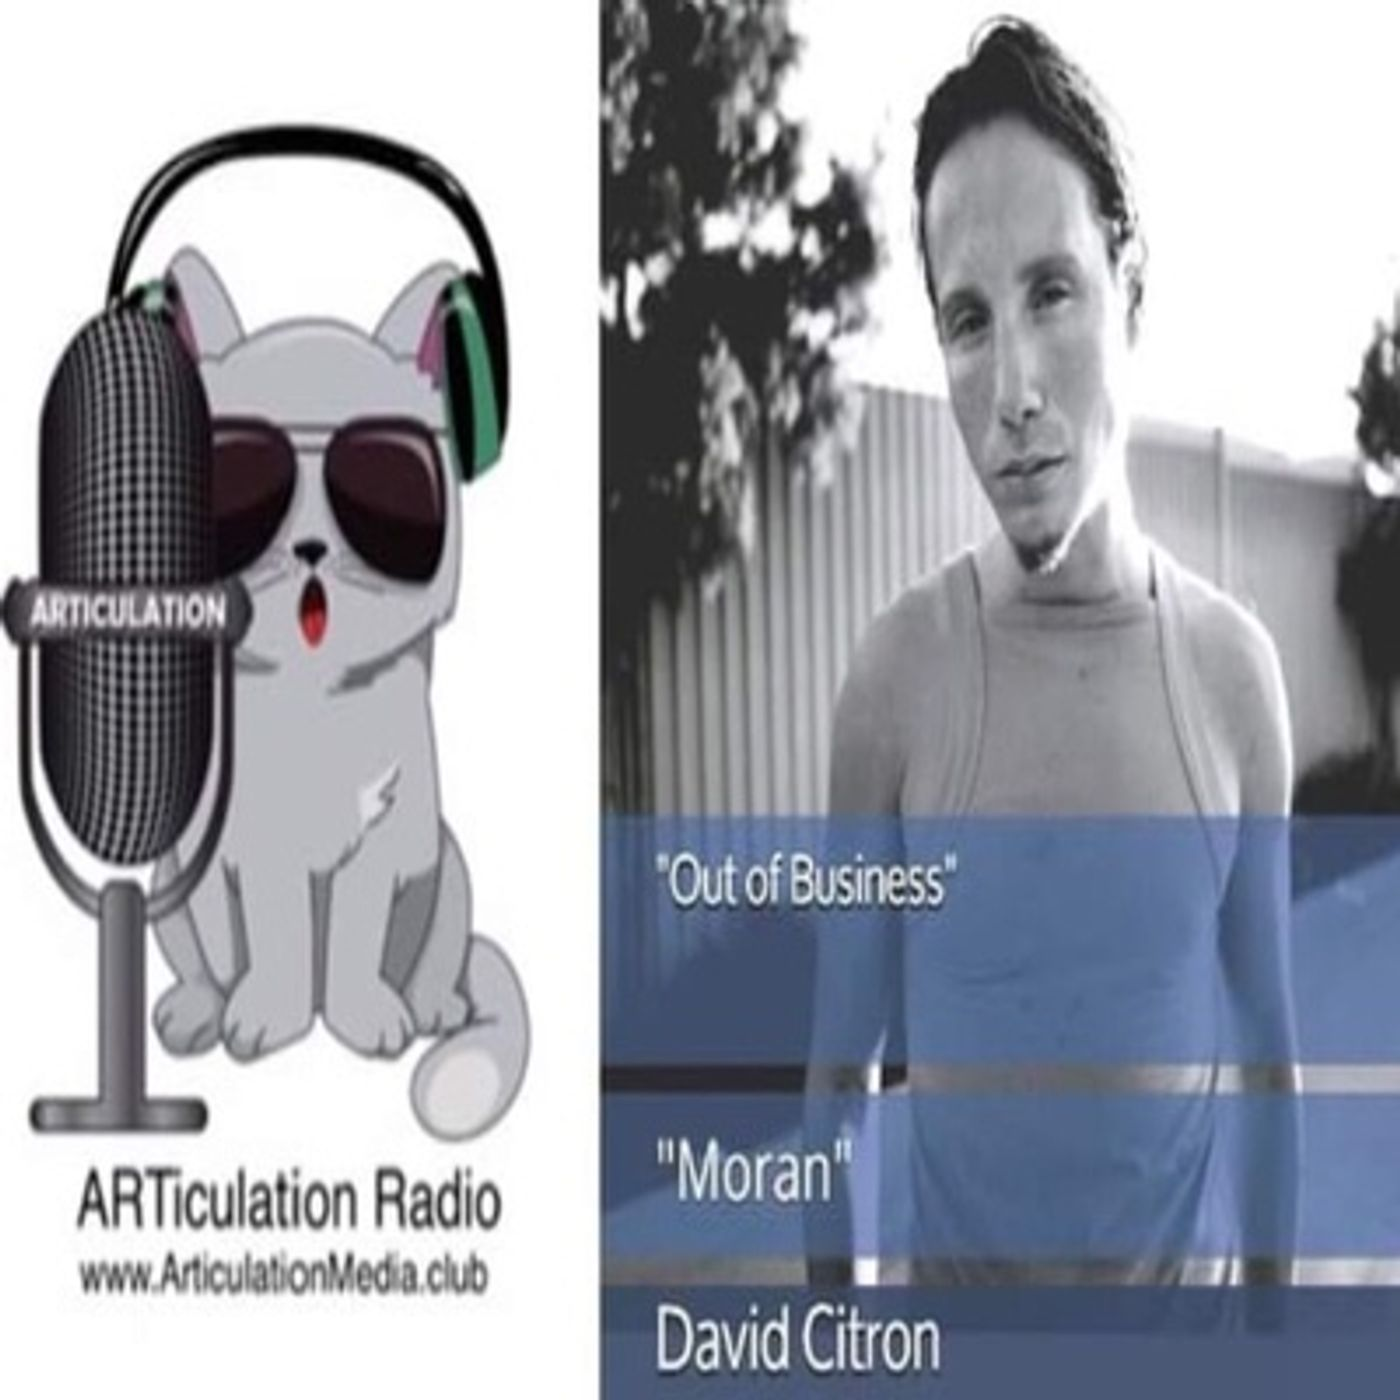 ARTiculation Radio — CUTTING UP & LOOSING YOURSELF (interview w/ Author David Citron)